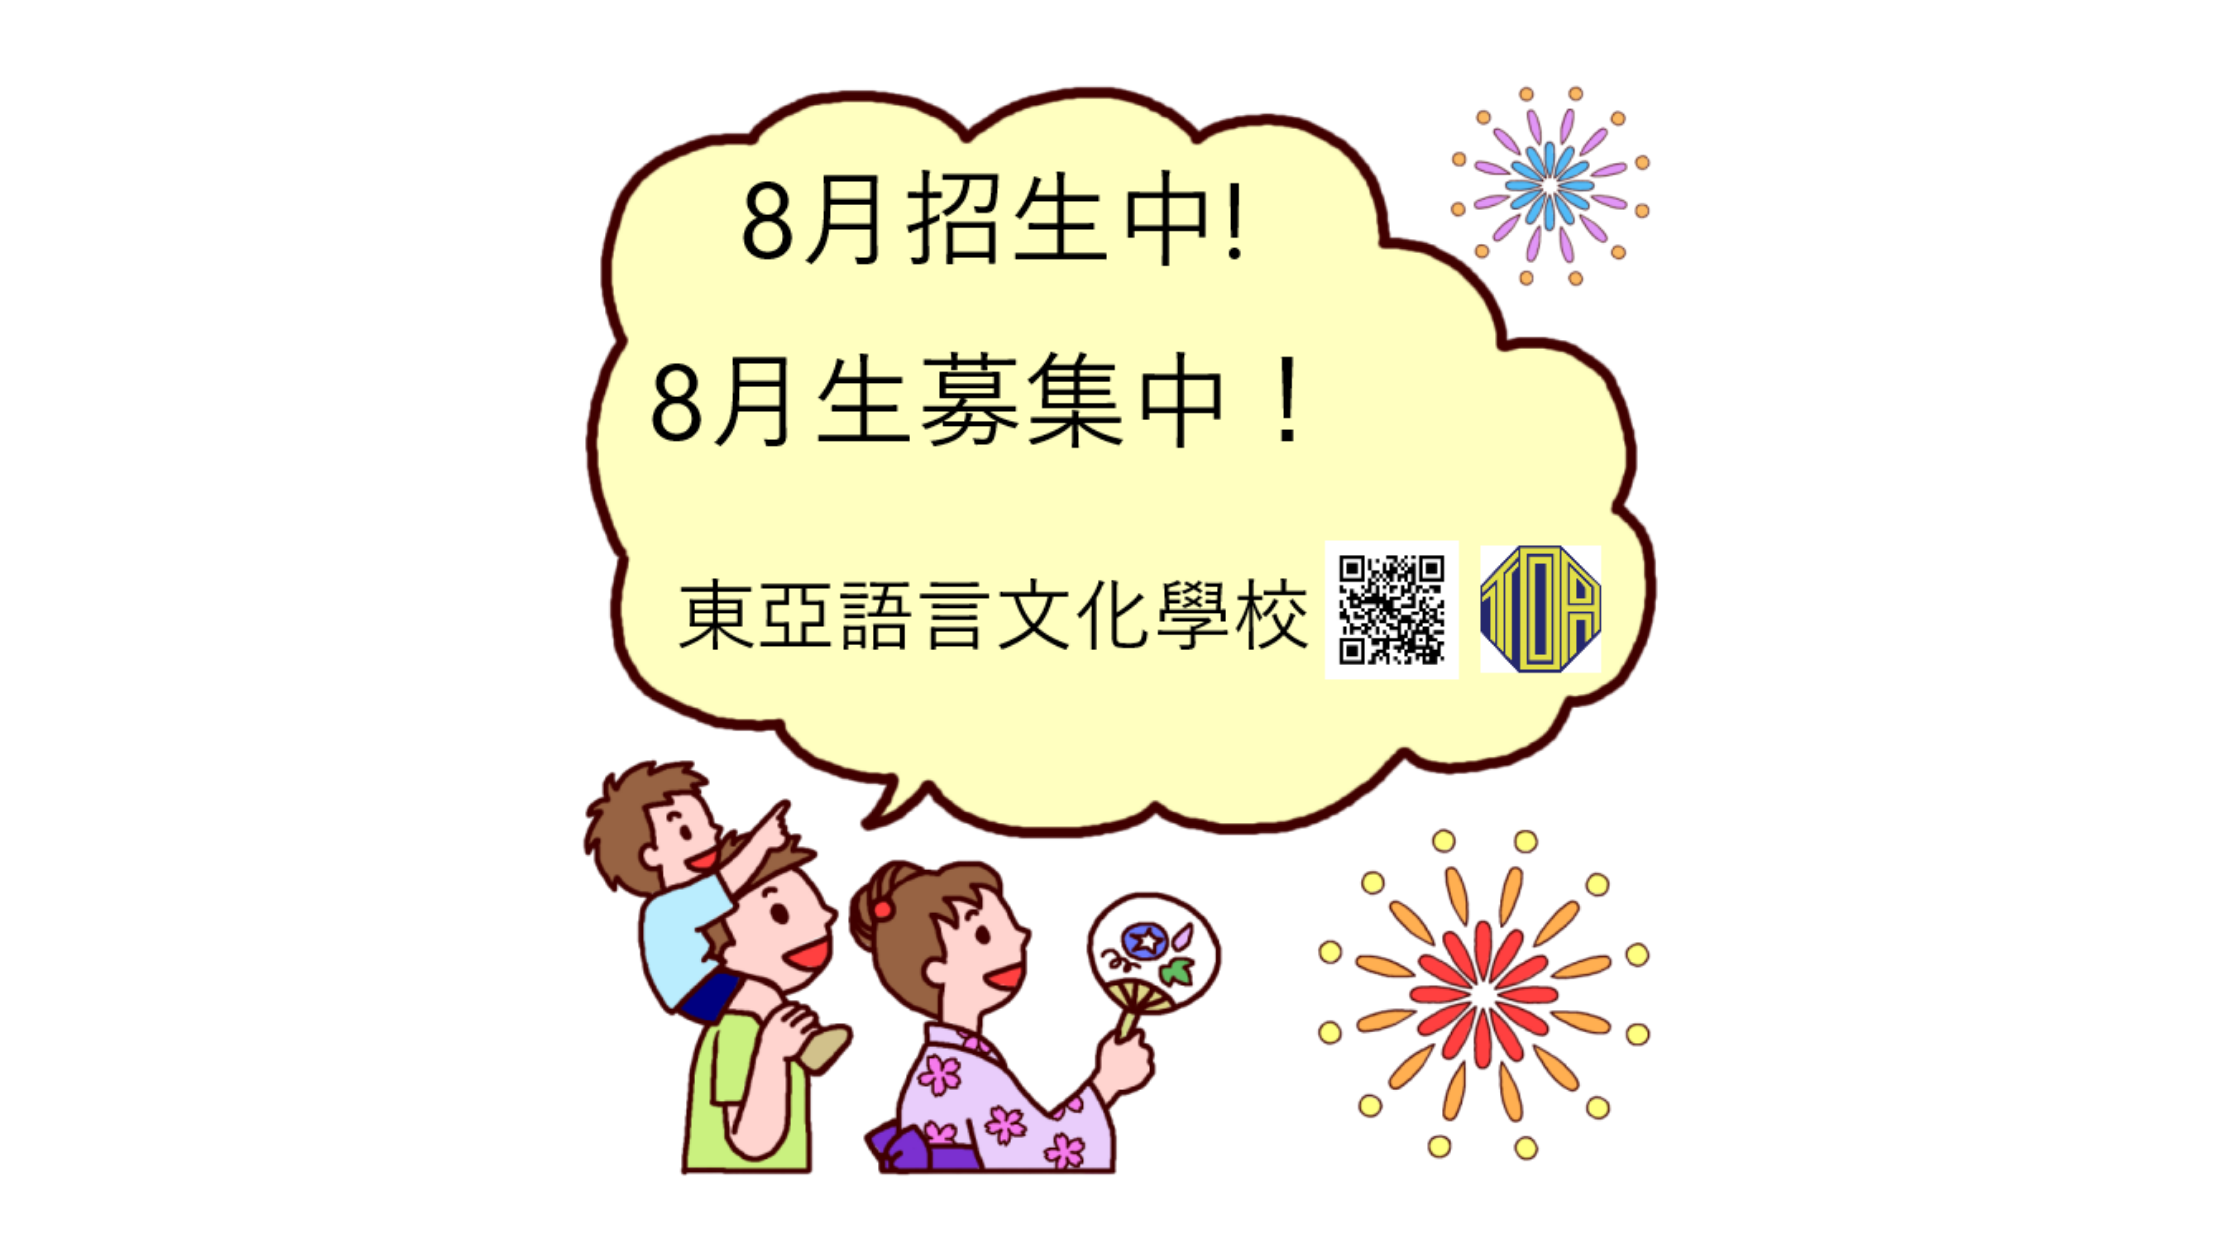 hongkong toa japanese school cantonese chinese summer courses 香港 東亞 日文 日本語 広東語 北京語